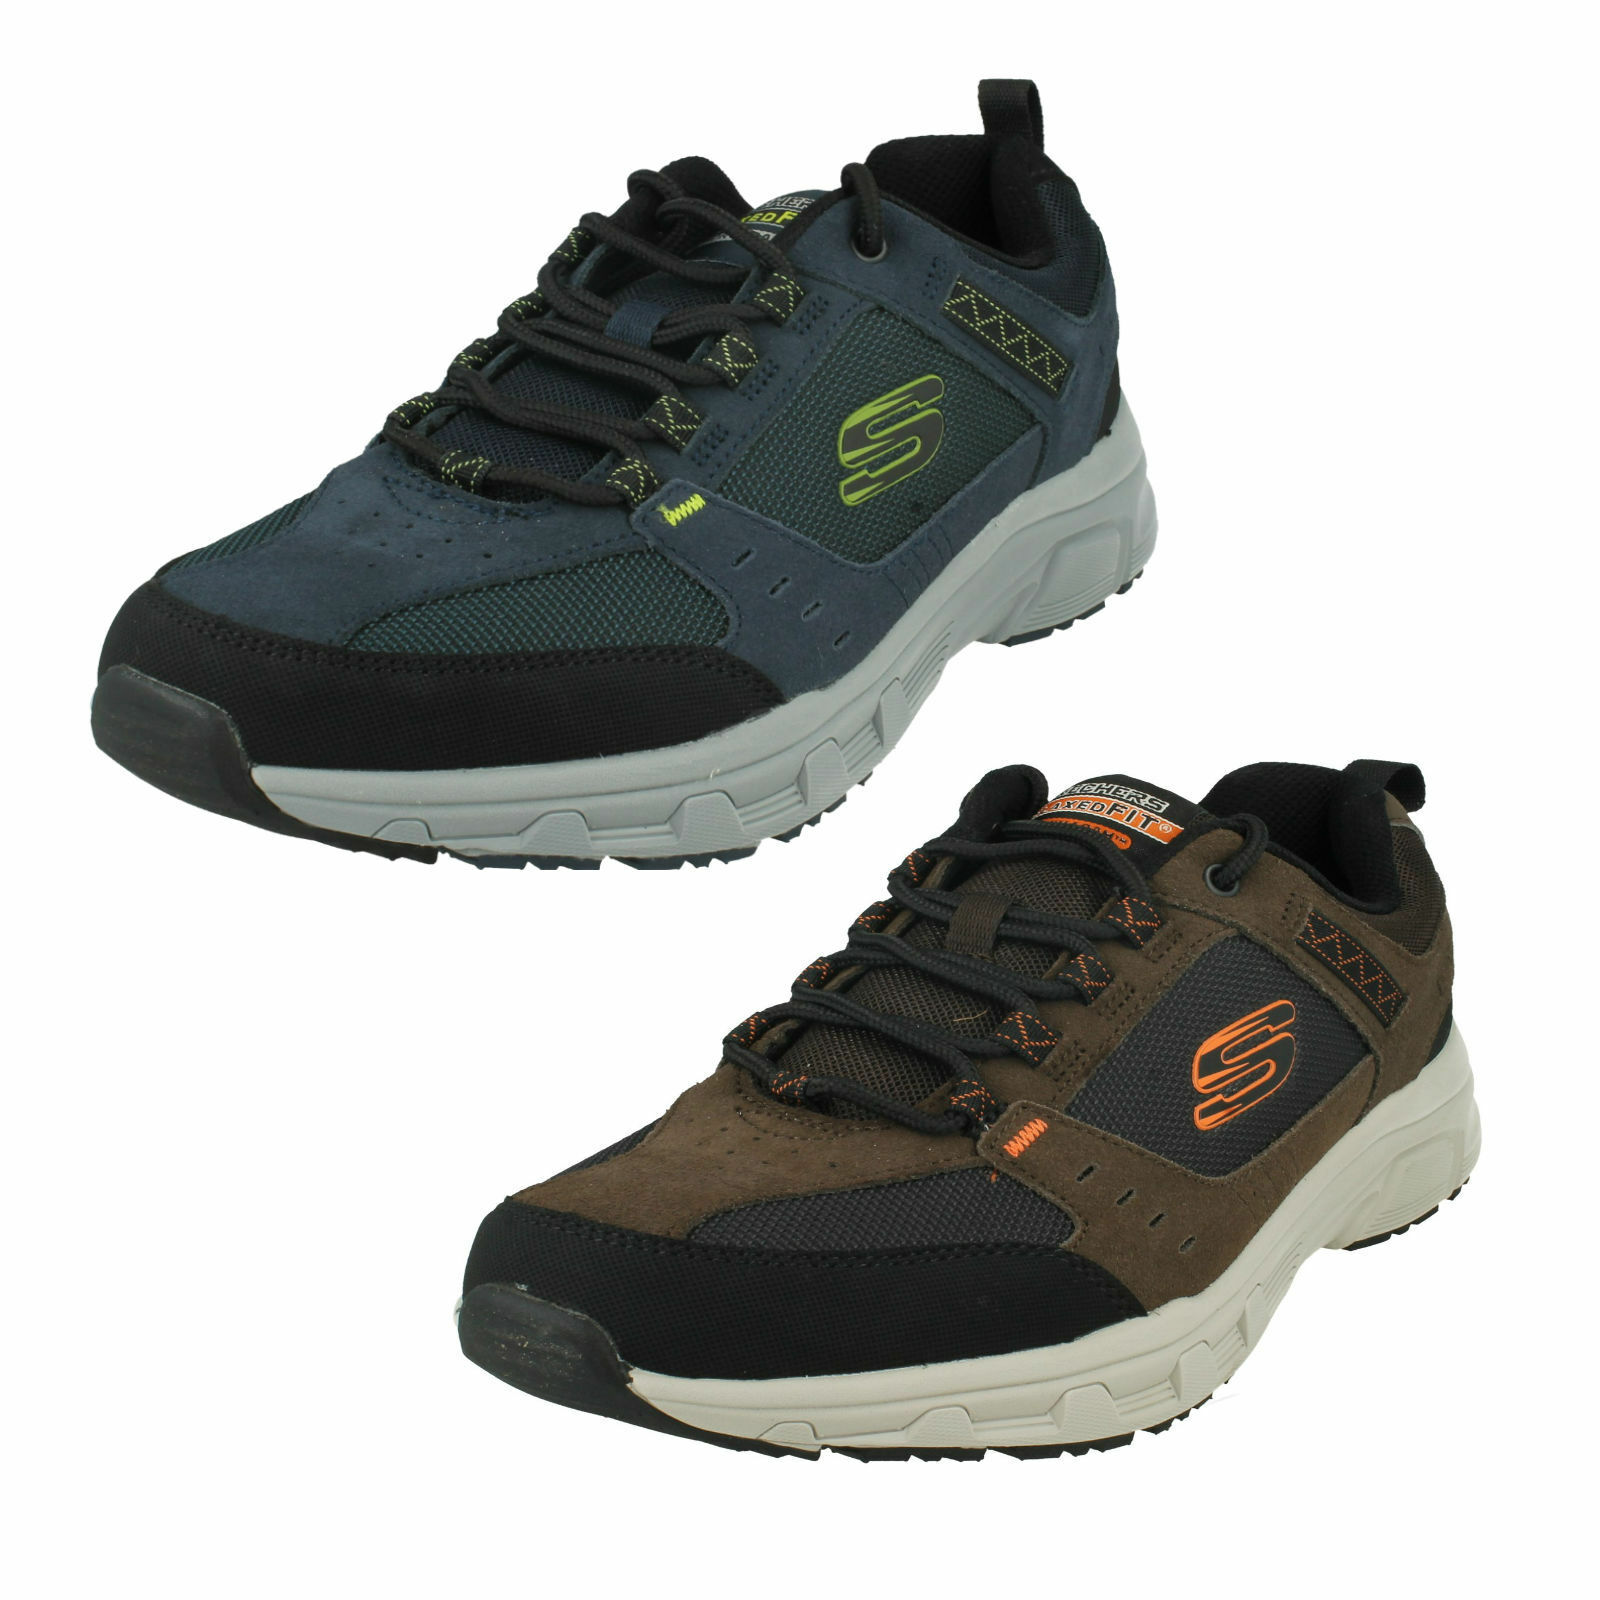 MENS SKECHERS OAK CANYON LACE UP MEMORY FOAM OUTDOORS CASUAL TRAINERS 51893